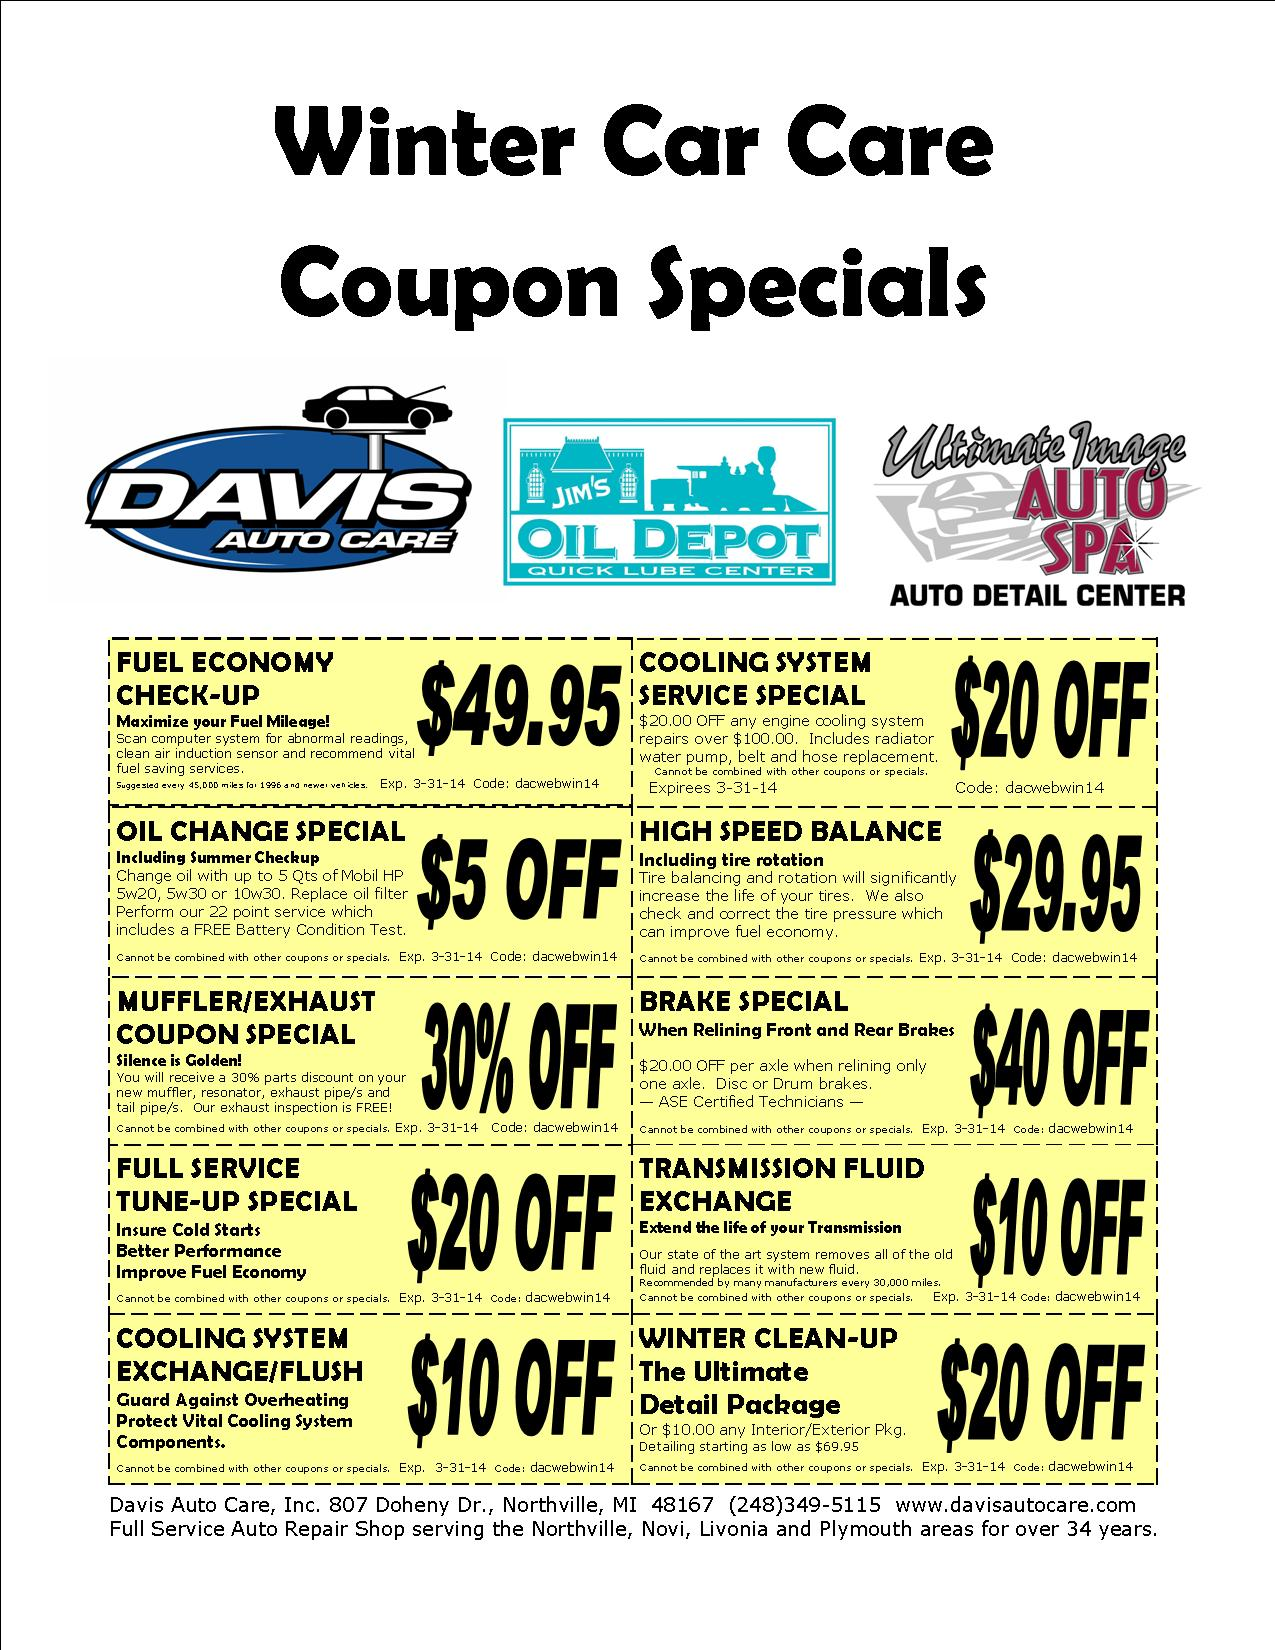 auto repair and service coupon specials davis auto care northville 48167. Black Bedroom Furniture Sets. Home Design Ideas